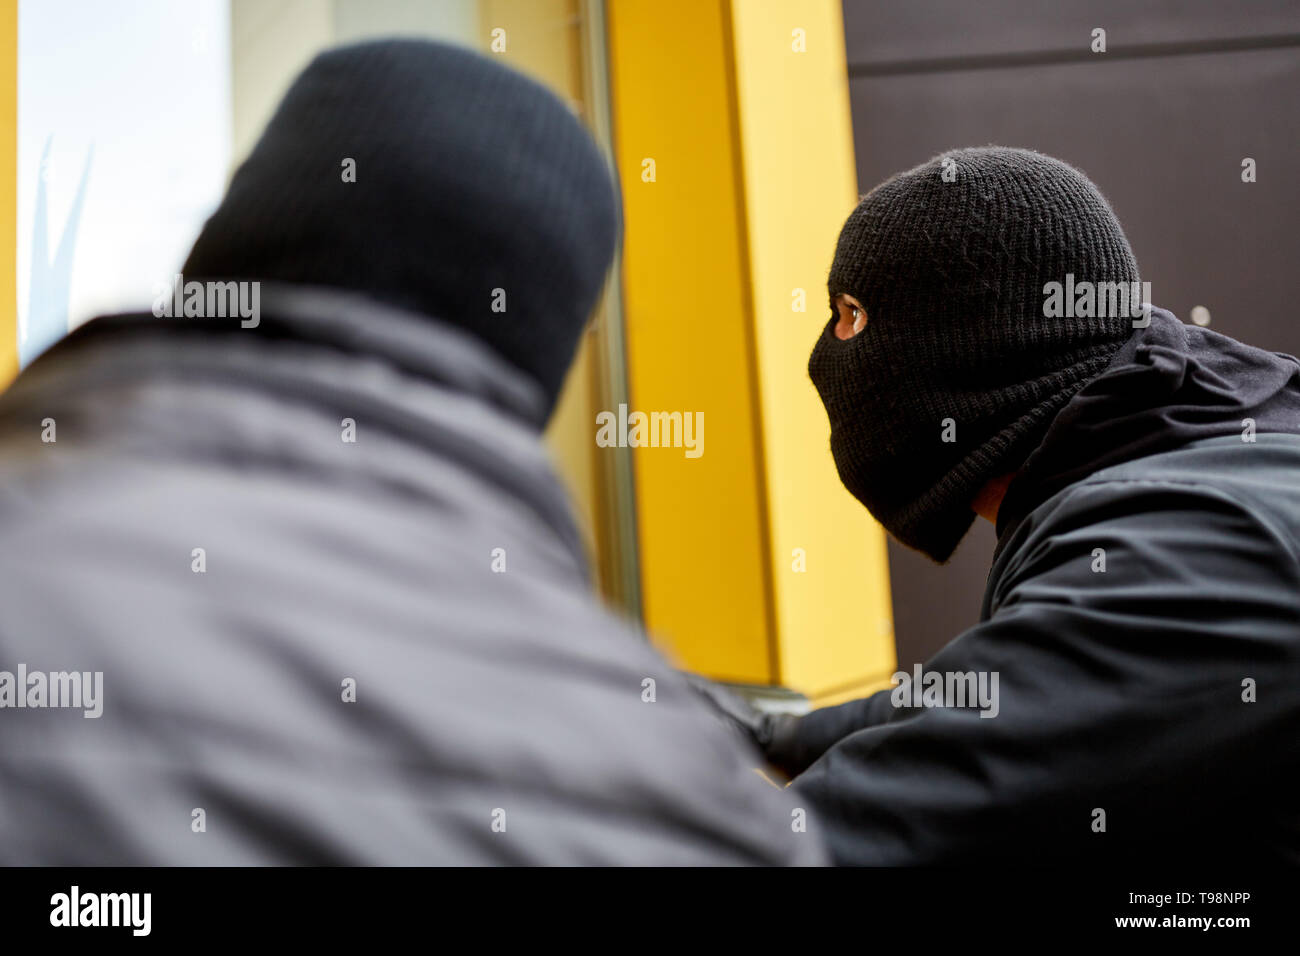 Two burglars quietly explore a house through a window for a burglary - Stock Image